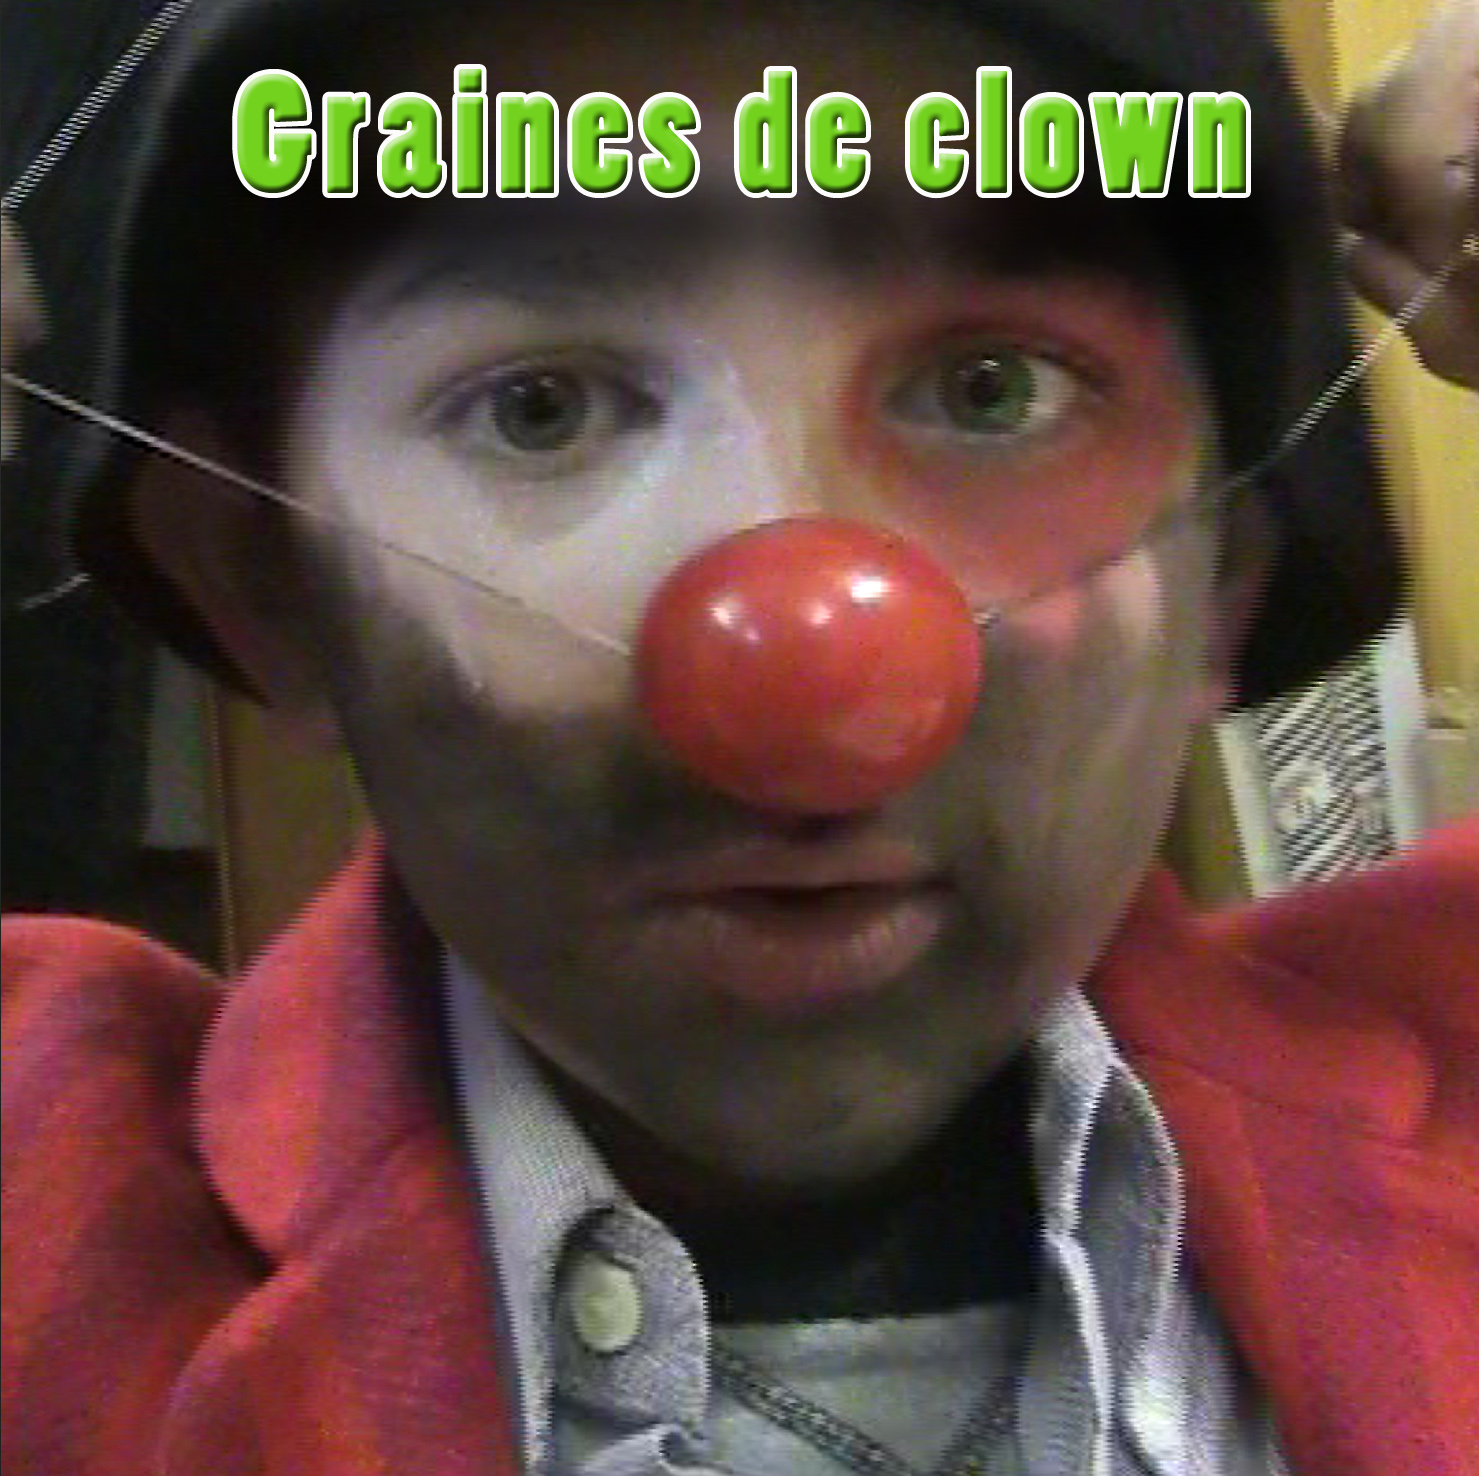 Graine de clown